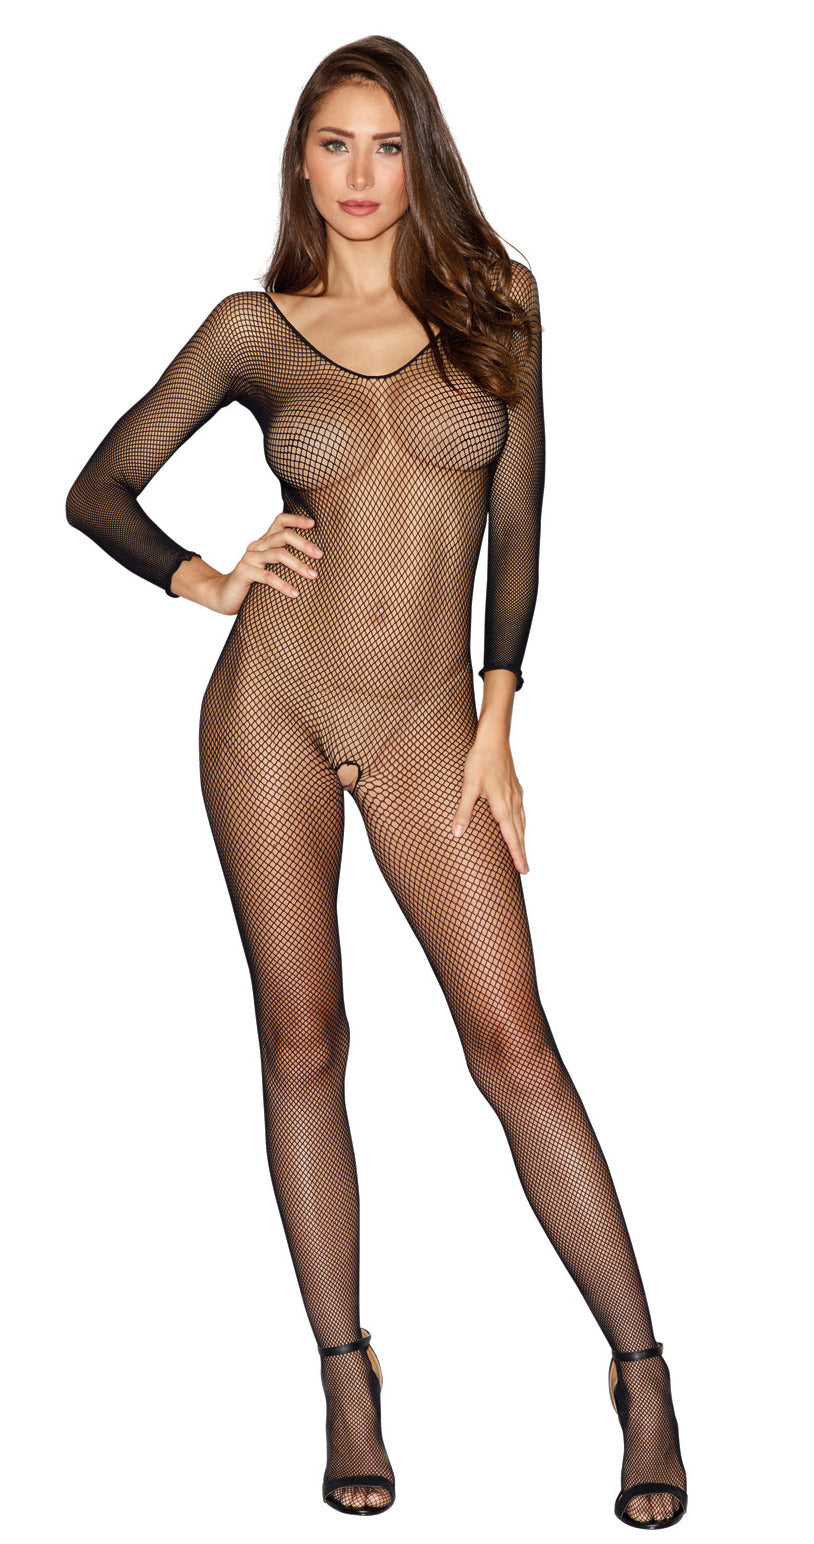 Bodystocking - One Size - Black - Dreamgirl -  Los Angeles Lingerie